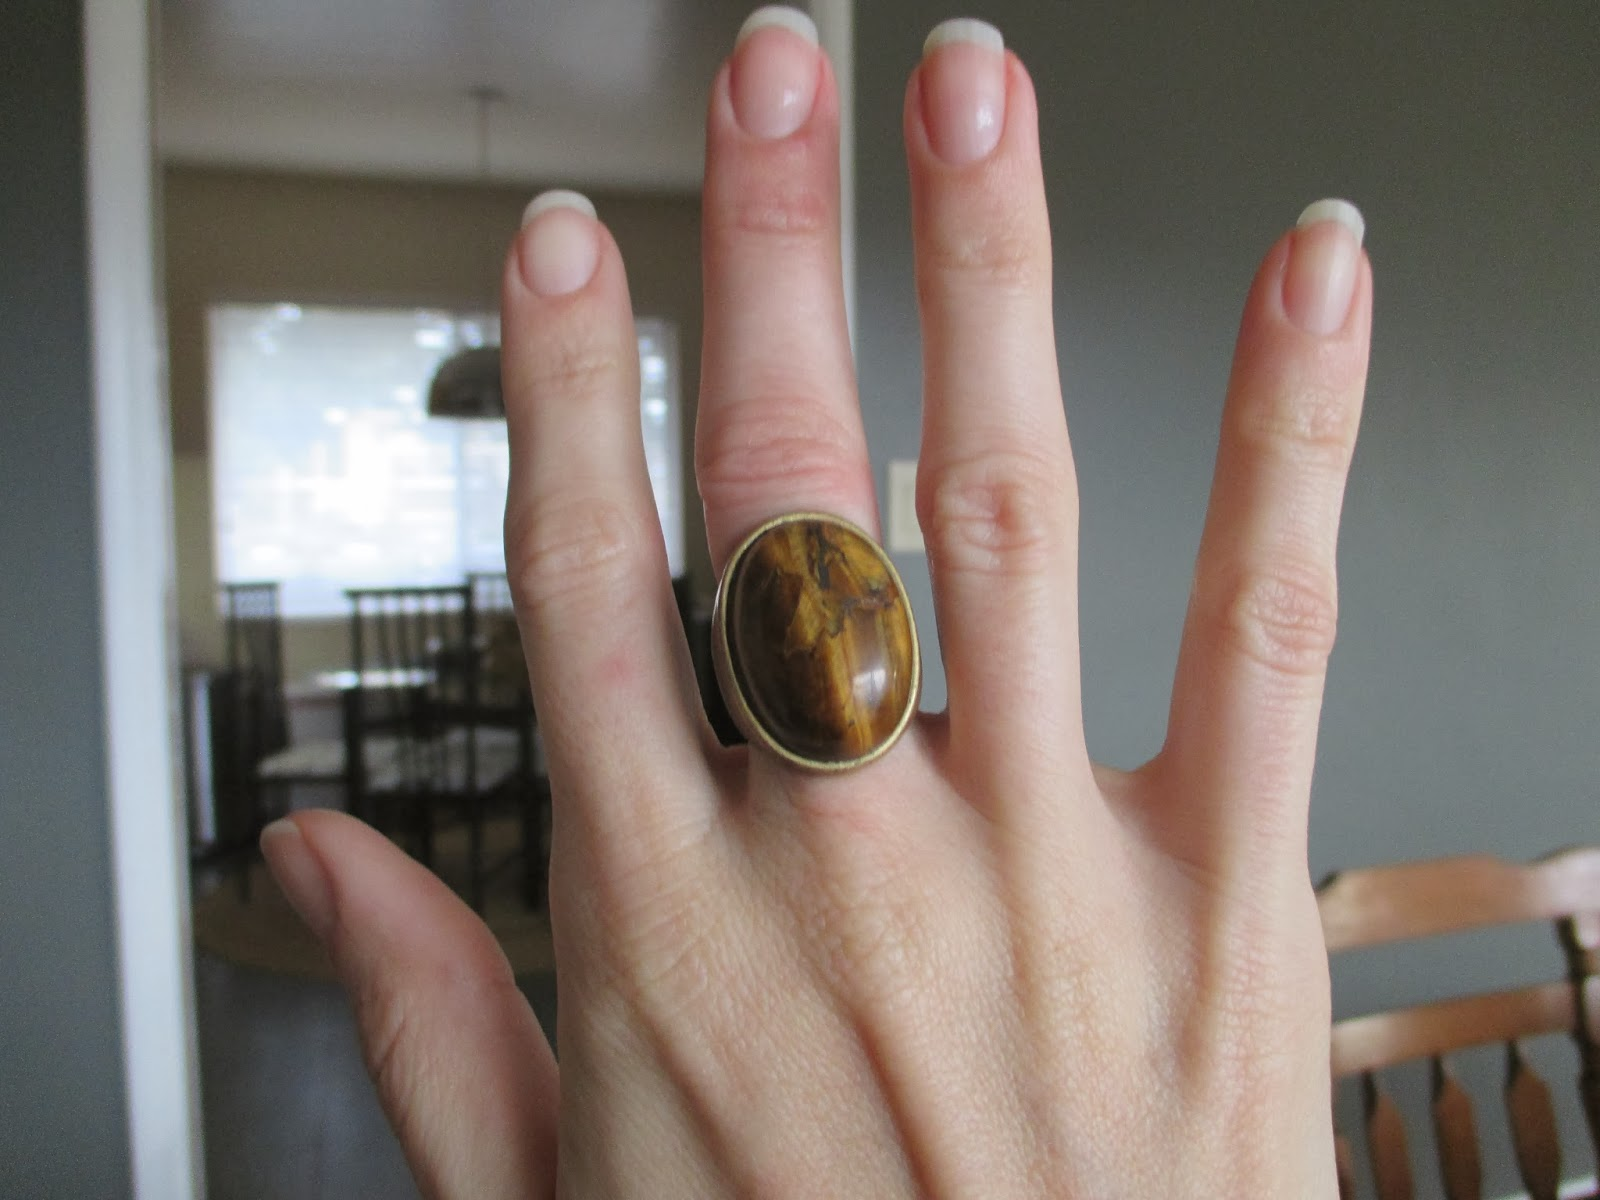 Back In The Day, I Wore Her On My Left Hand (which Is Slimmer Than My Right)  But The Old Ball And Chain Ring Goes On That Hand Now,